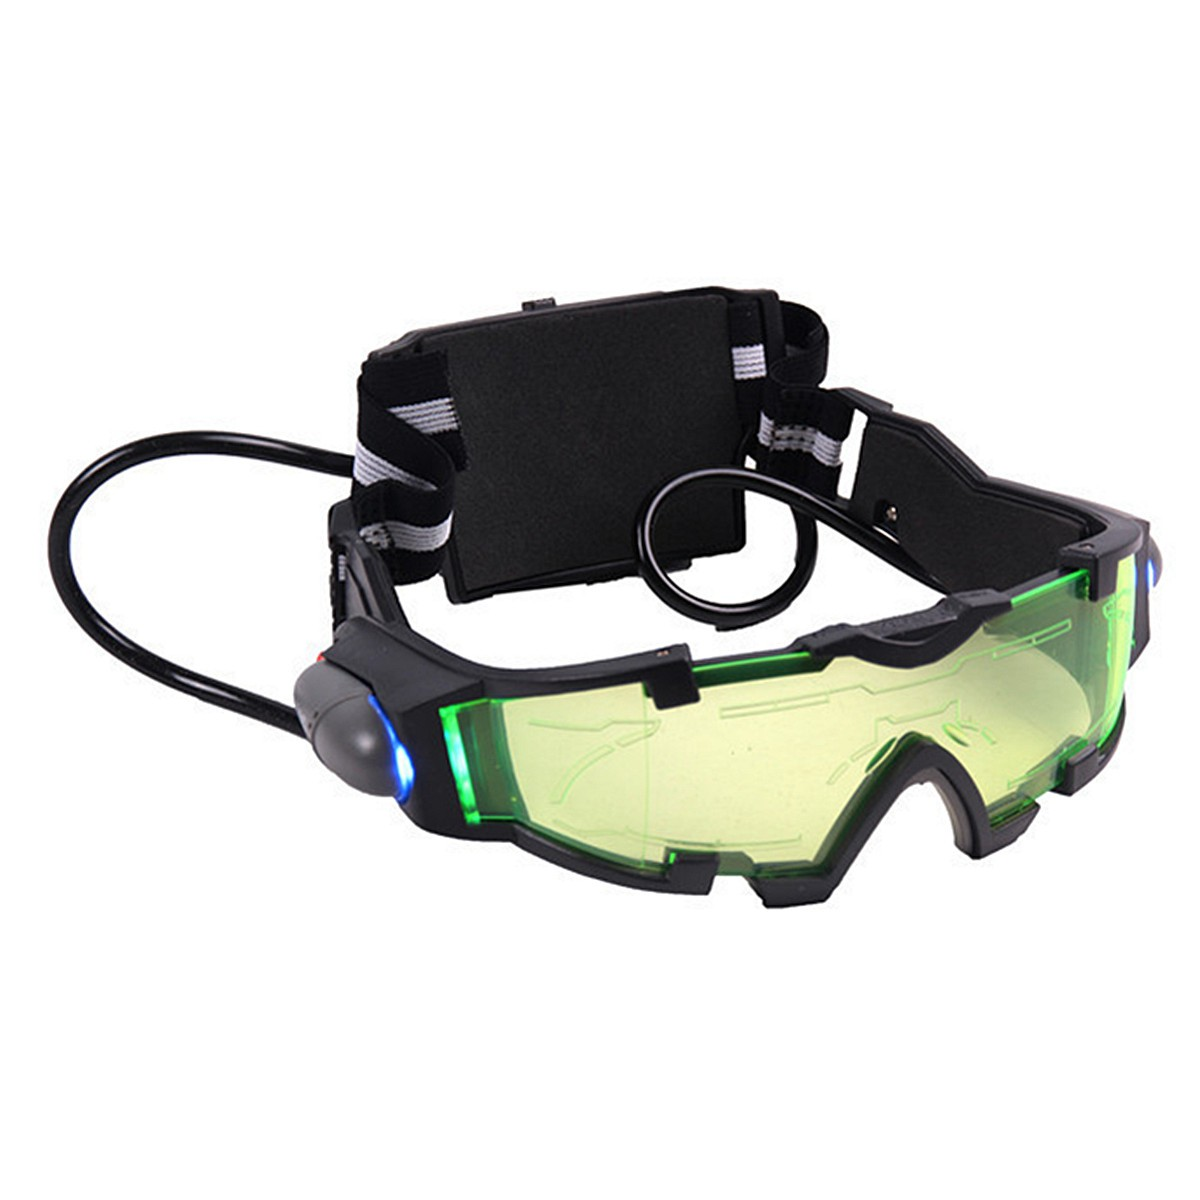 NEW Safurance Adjustable ElasticMilitary Night Vision Goggles Glasses Security Eyeshield Workplace Safety Eye Protection цены